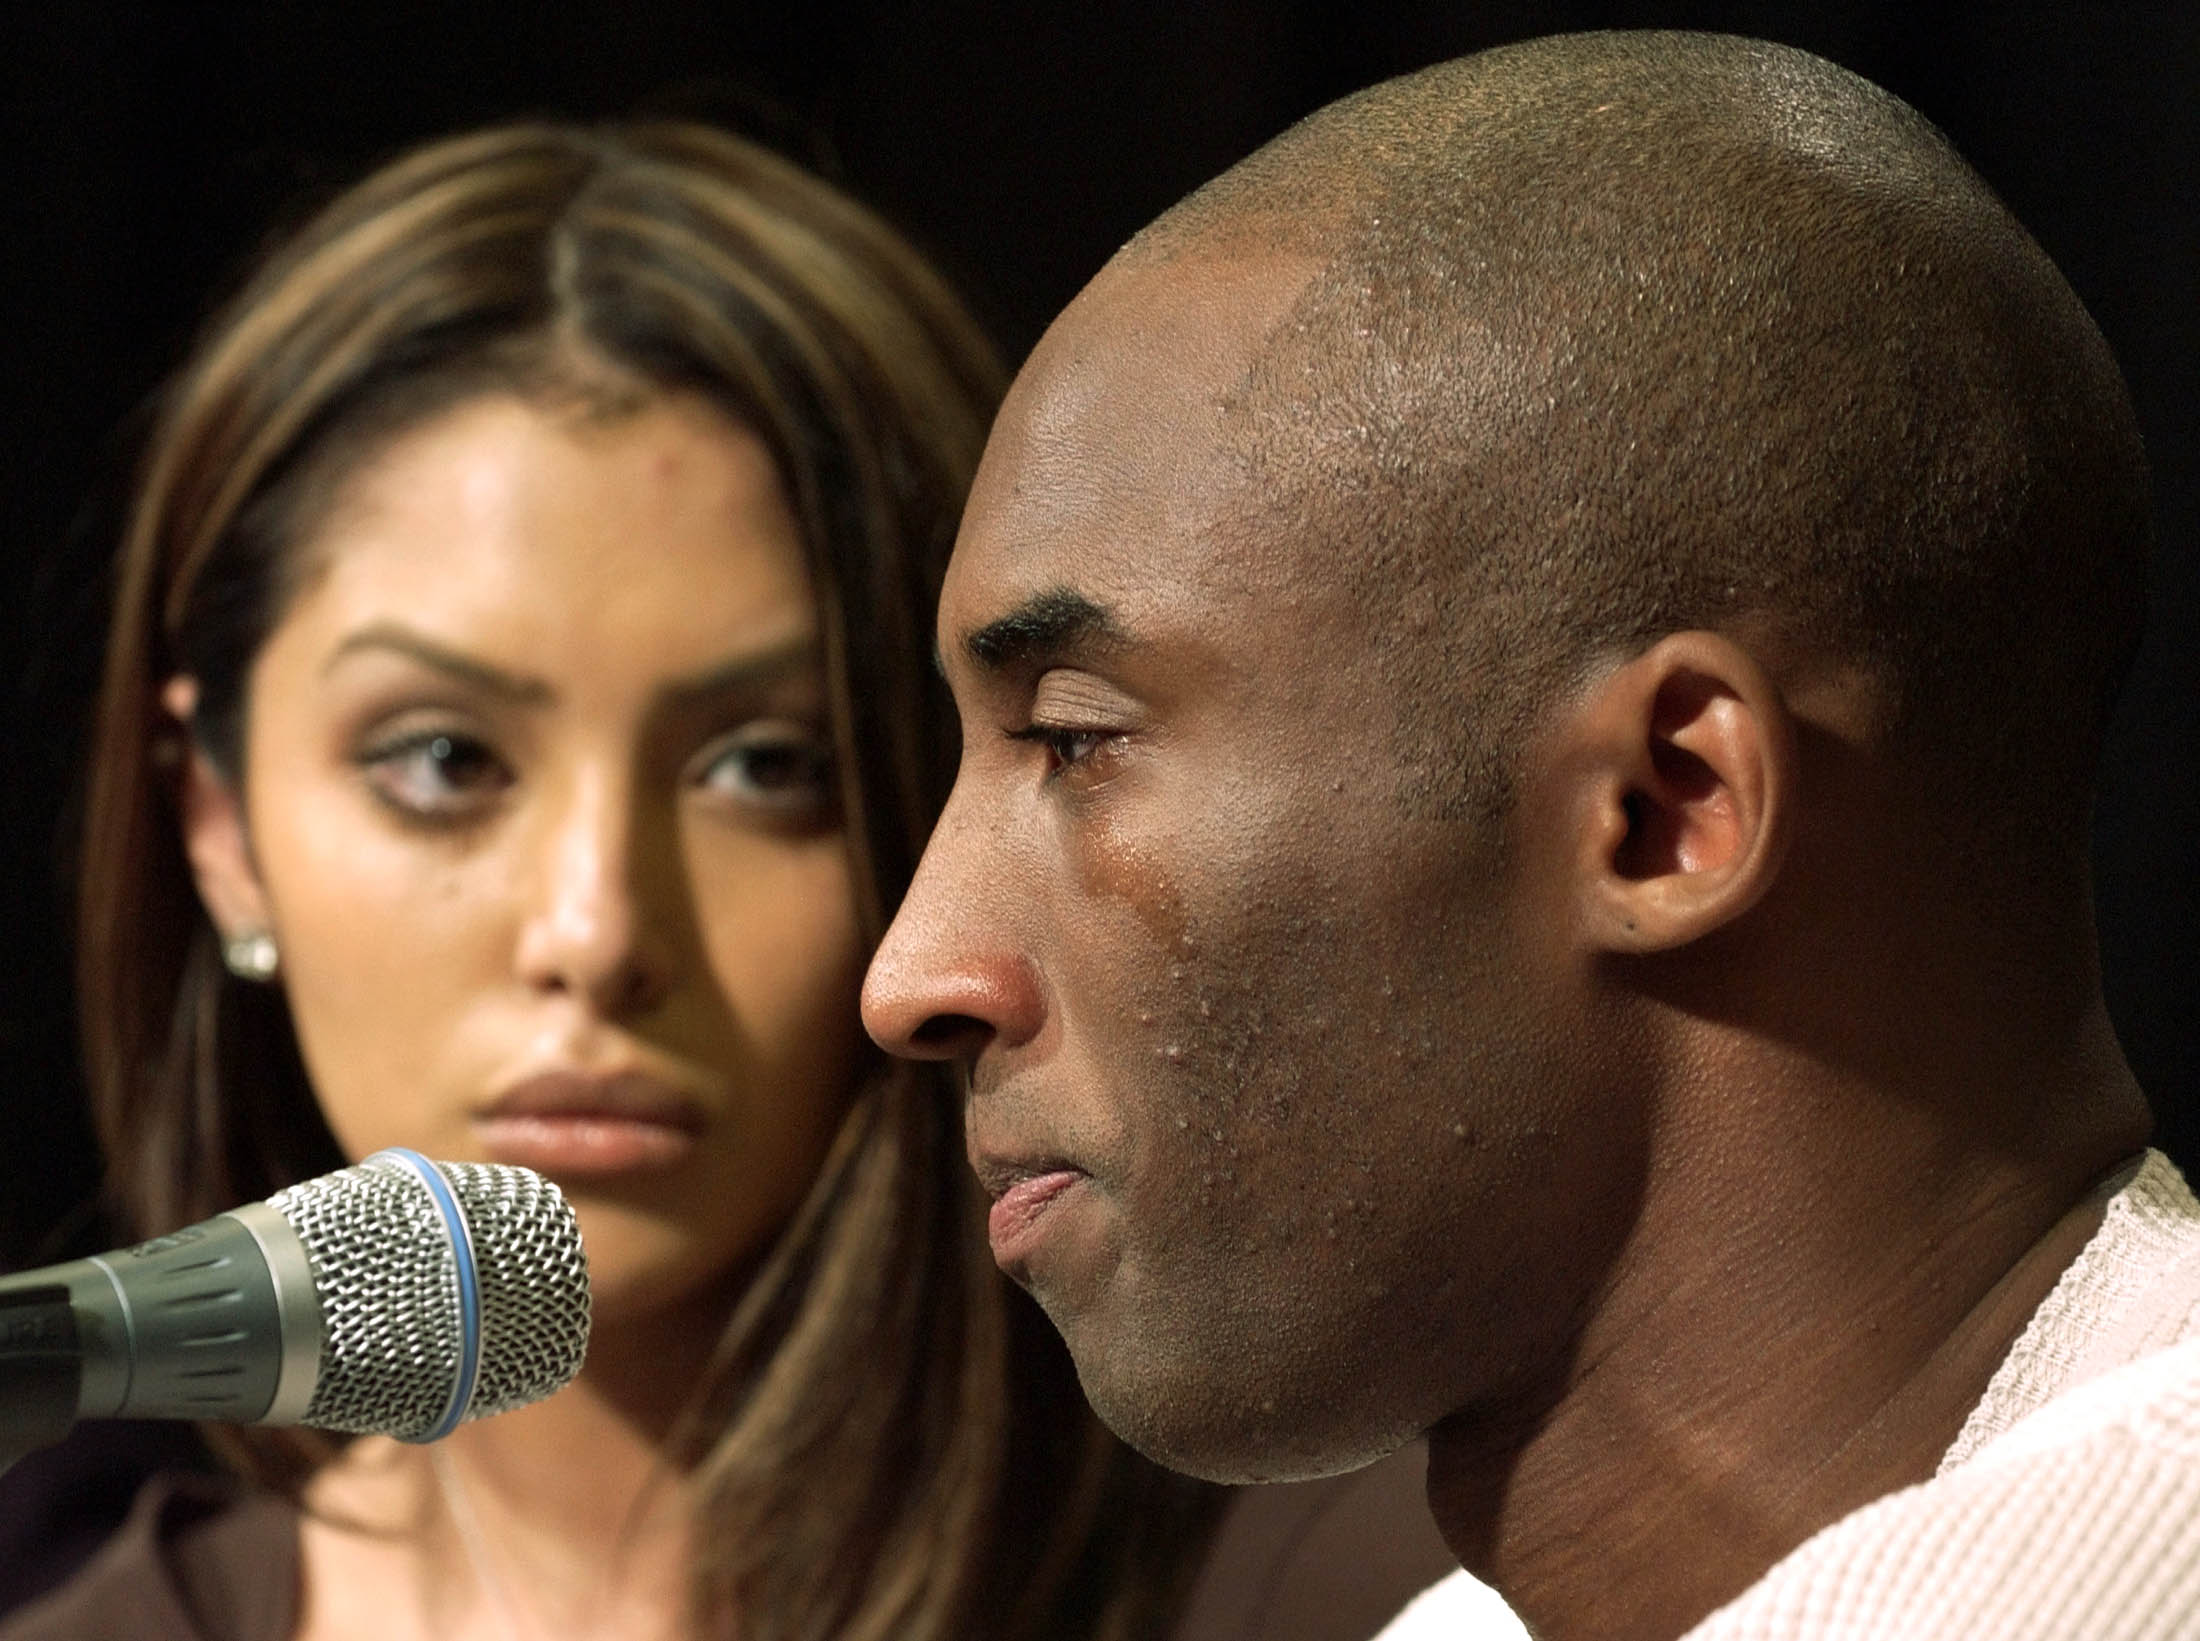 Bryant cries as he admits to                               adultery in front of his wife Vanessa at a press conference in Los Angeles on July                               18, 2003. The Laker guard's off-court troubles that season, which included an arrest for sexual assault, somewhat tarnished his growing reputation.